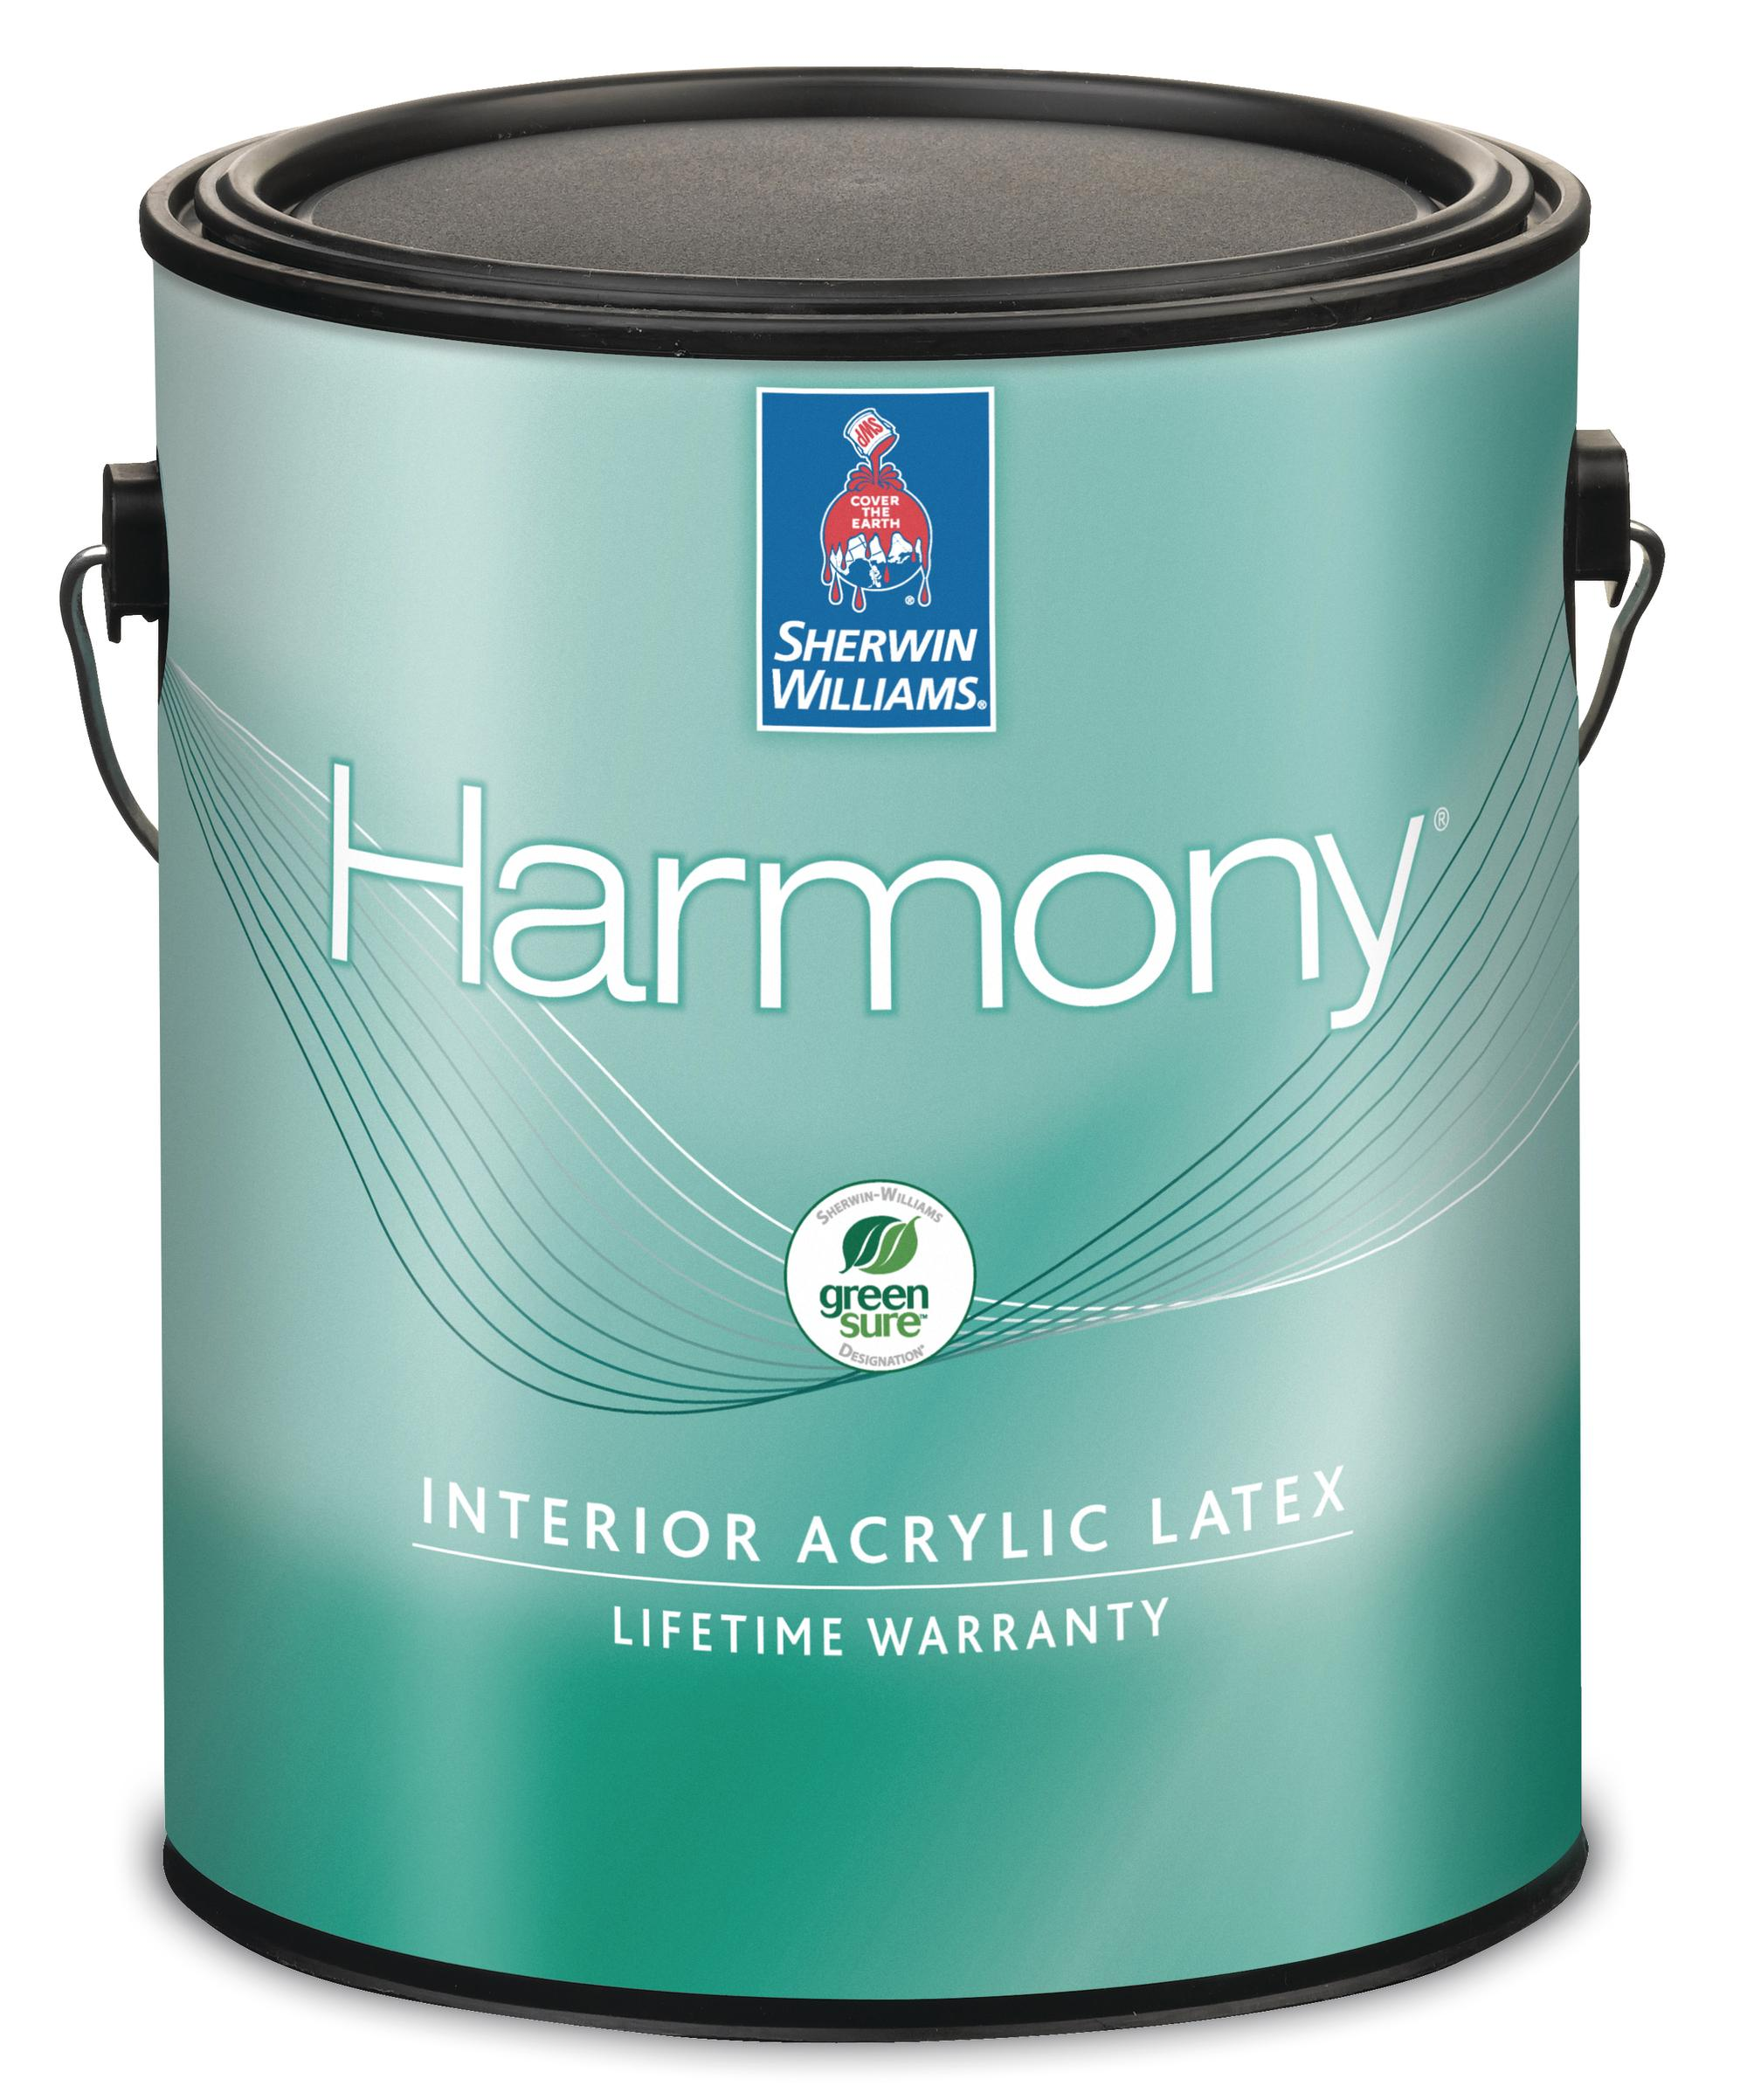 sherwin williams reformulated harmoney latex paint remodeling paints interiors sherwin. Black Bedroom Furniture Sets. Home Design Ideas